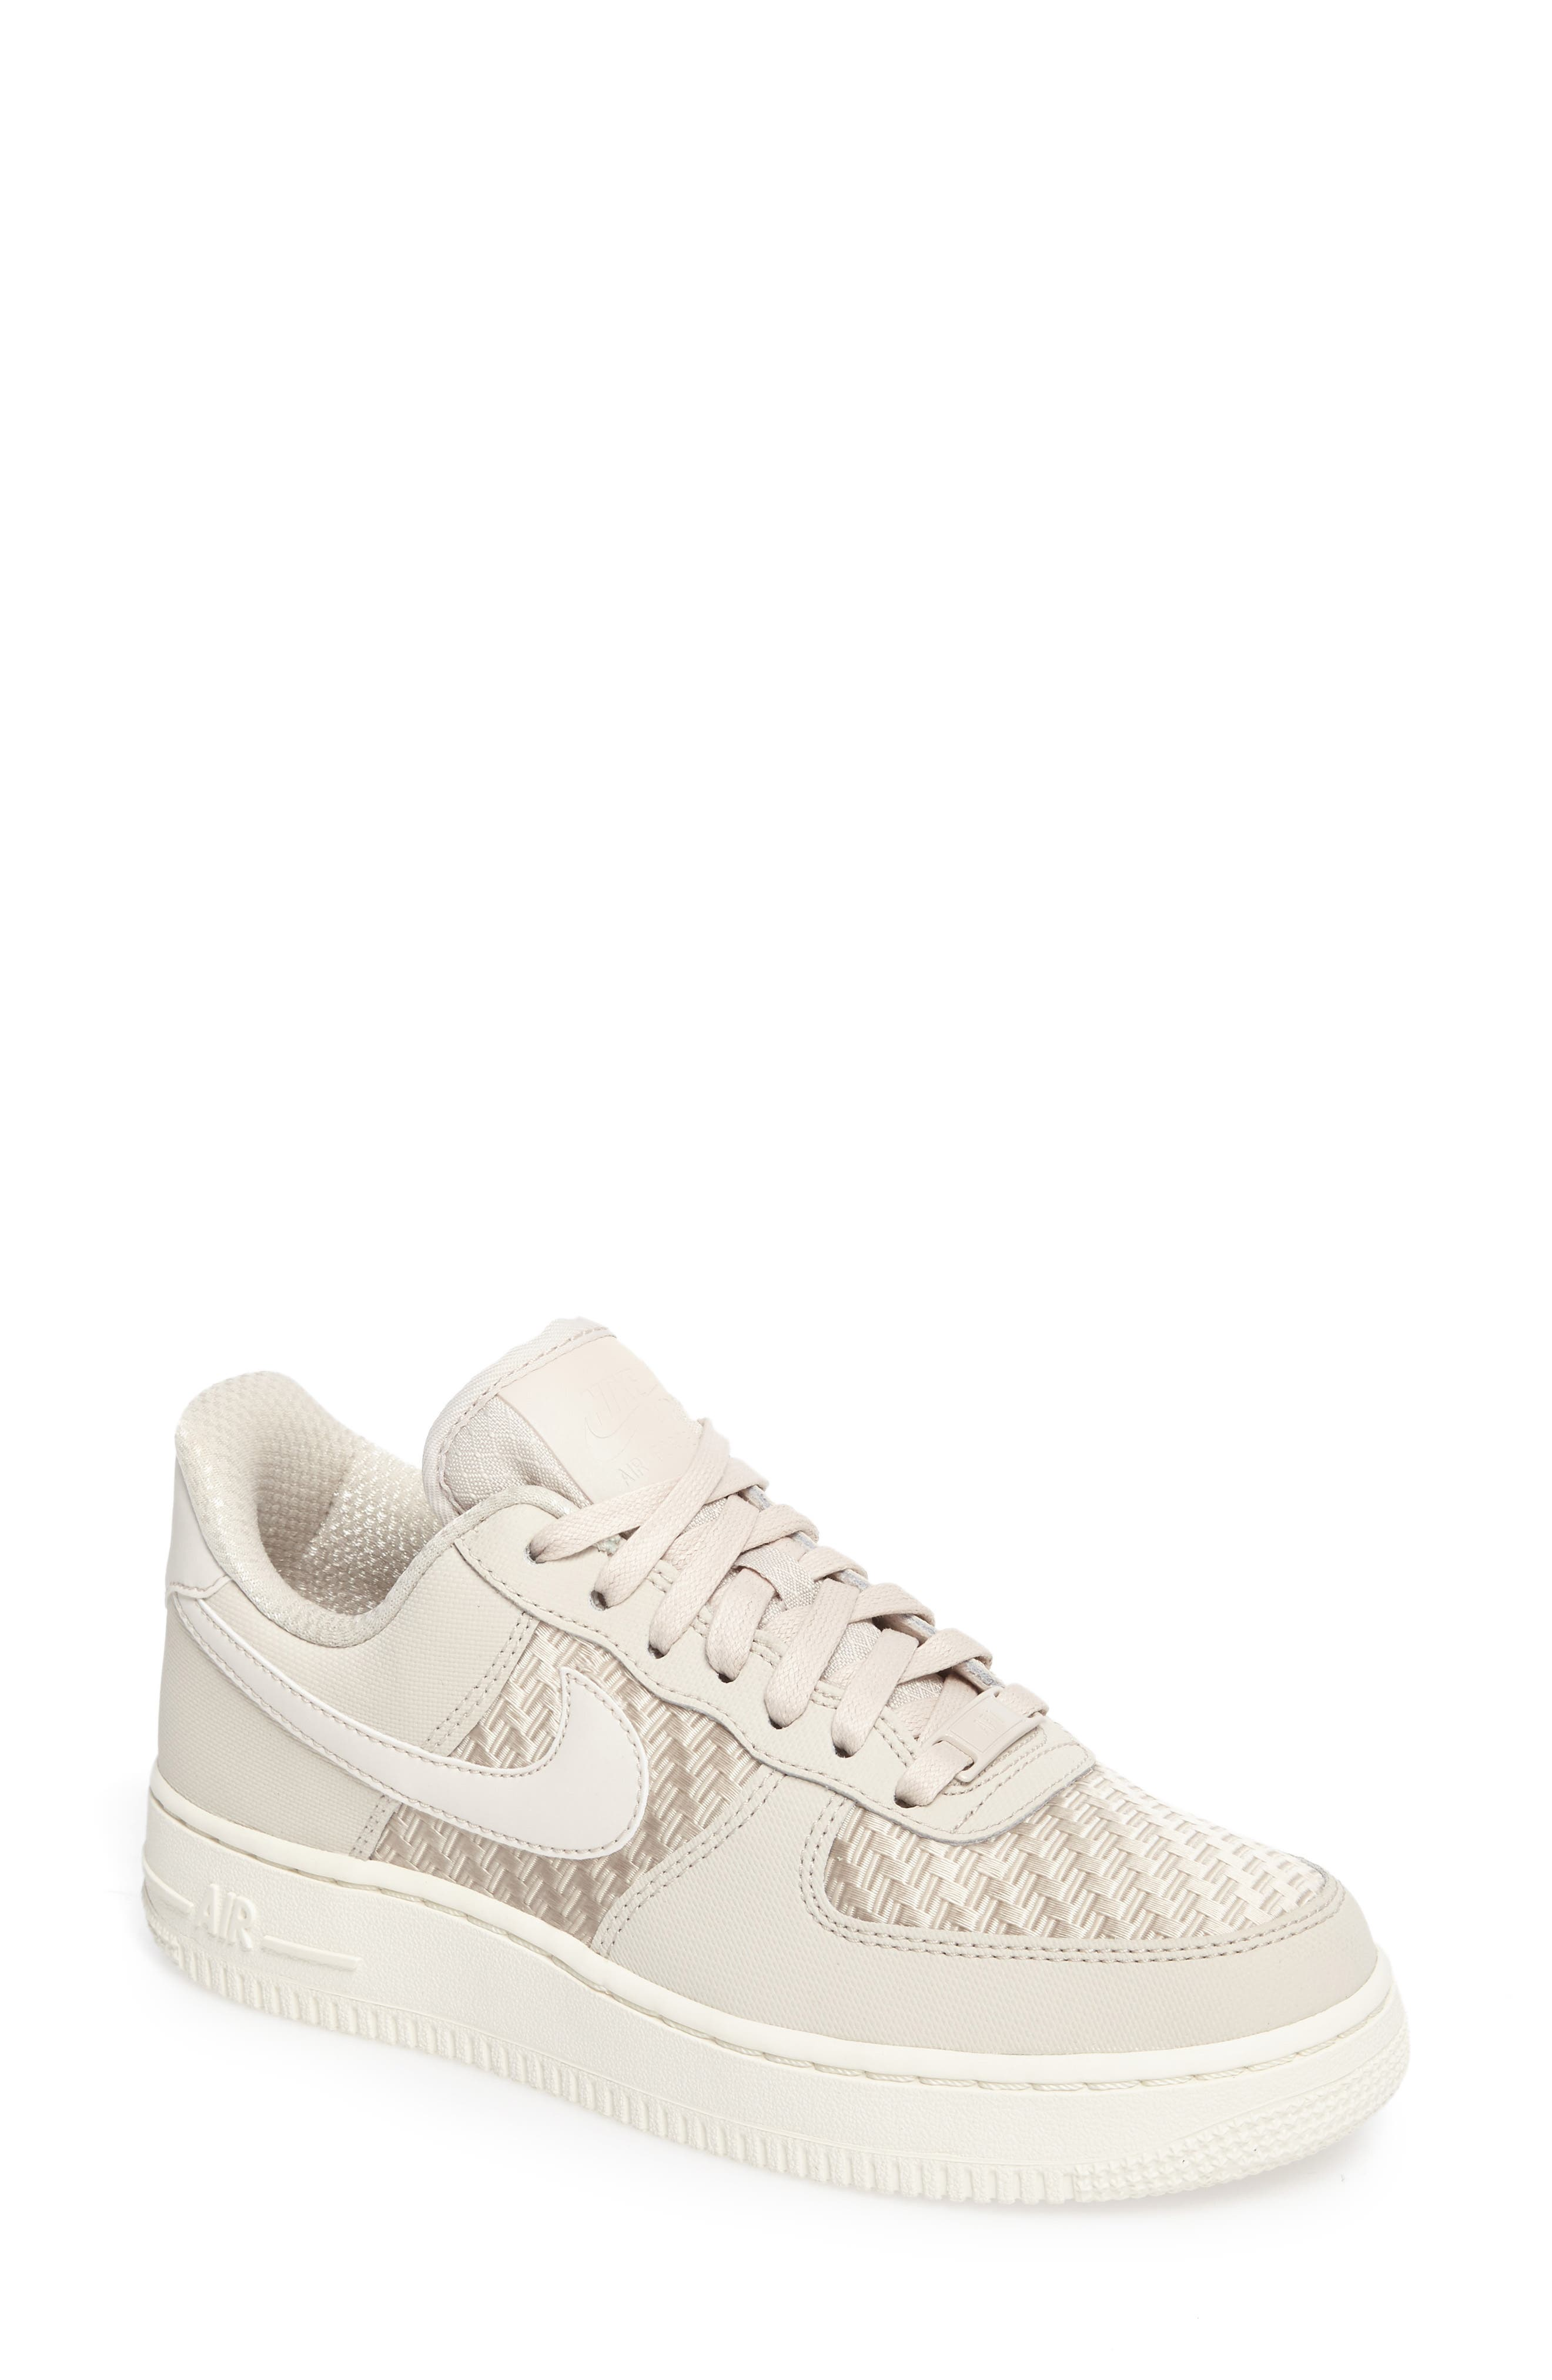 Nike Air Force 1 '07 Pinnacle Sneaker (Women)